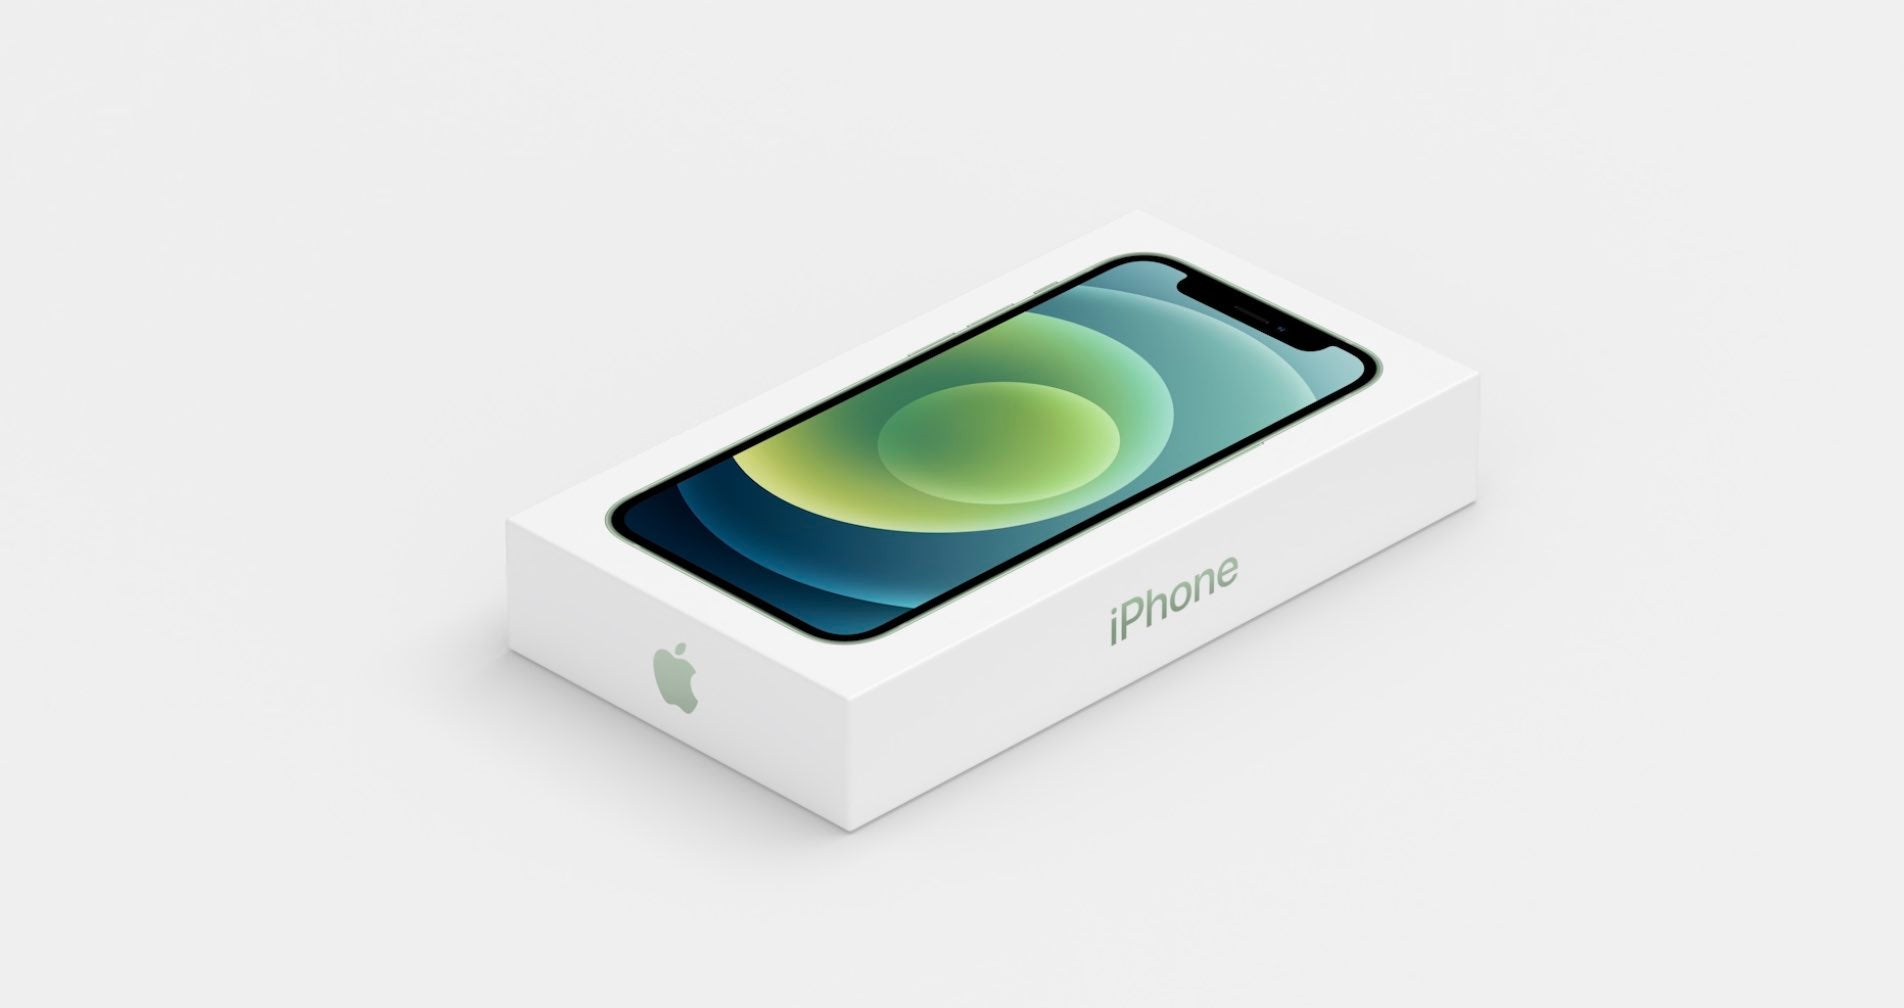 iPhone 12: 5G, price, release date and specs - all you need to know